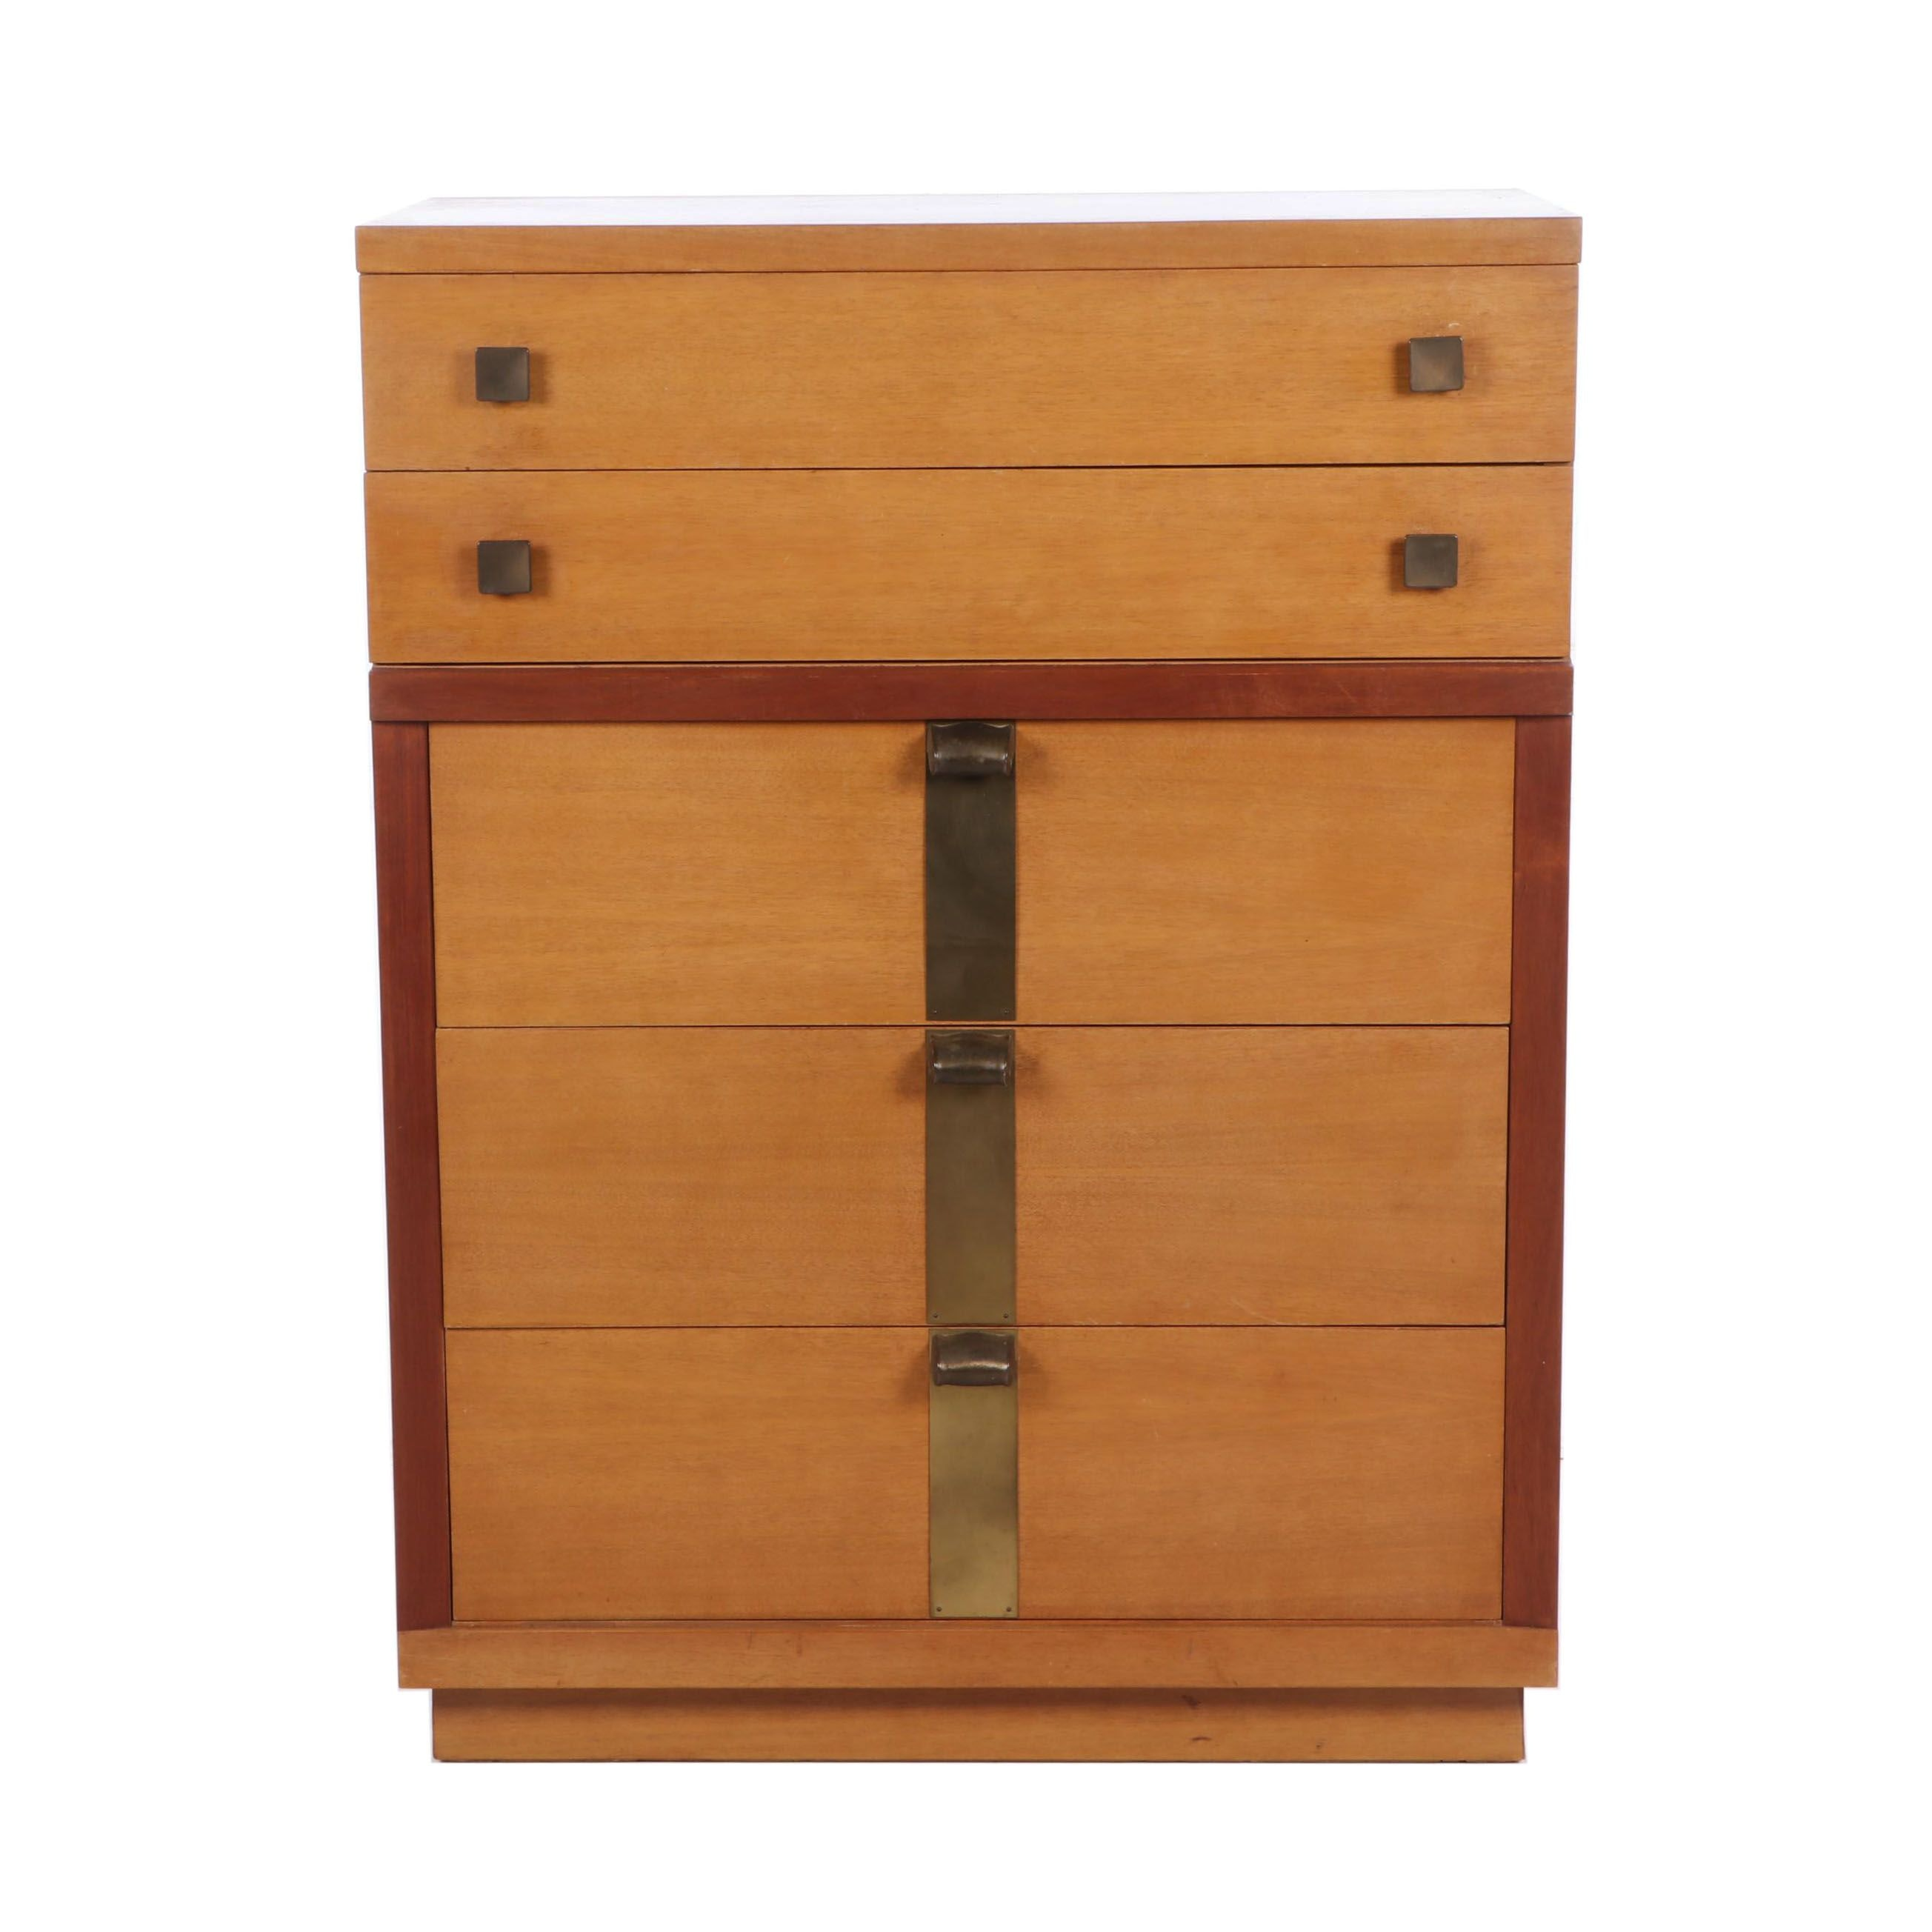 Amerticam Art Deco Style Chest, Mahogany and Brass Mounted, Mid 20th Century